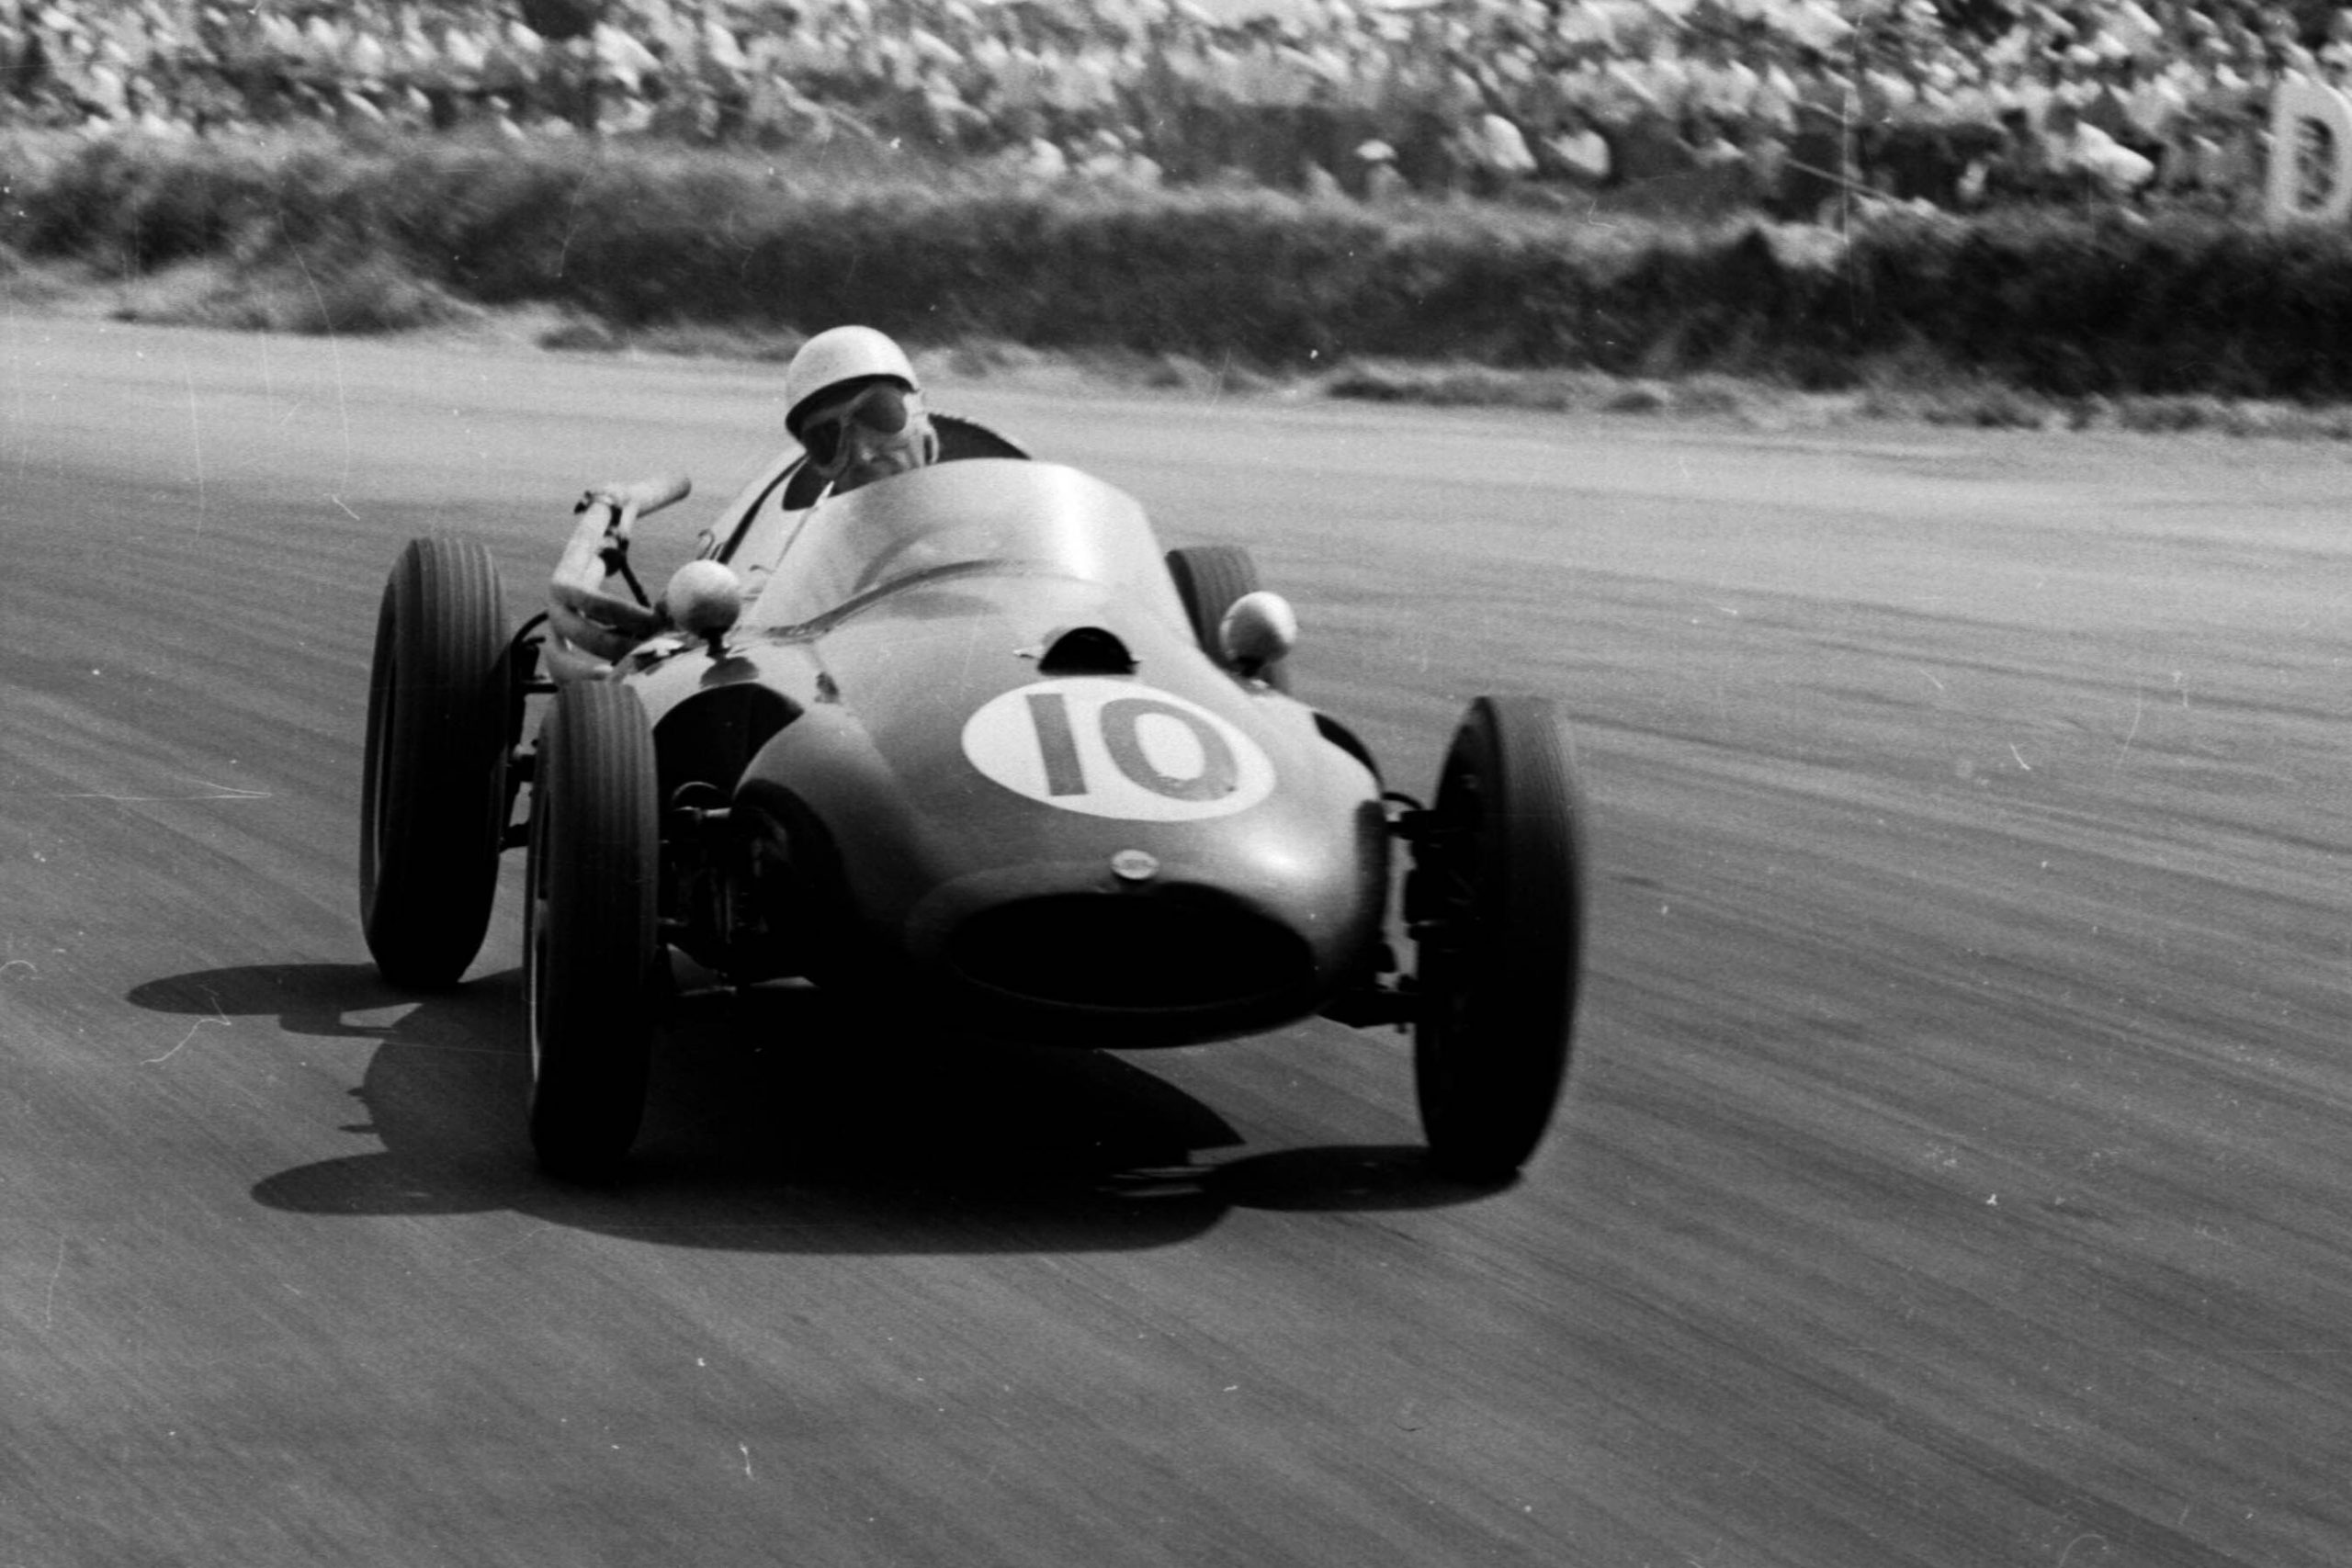 Roy Salvadori in his Cooper T45 Climax